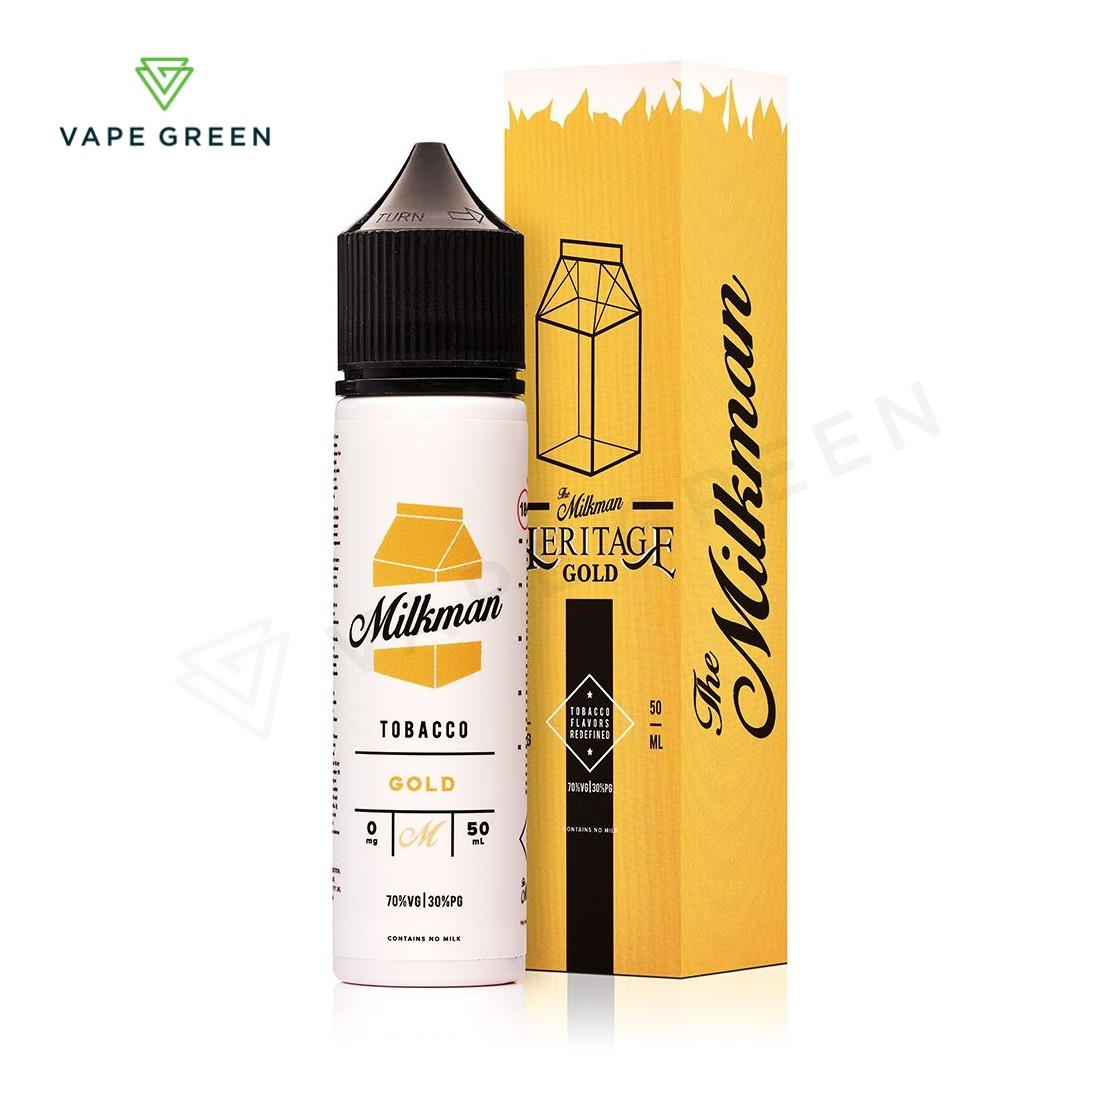 Gold E-Liquid by The Milkman Heritage 50ml